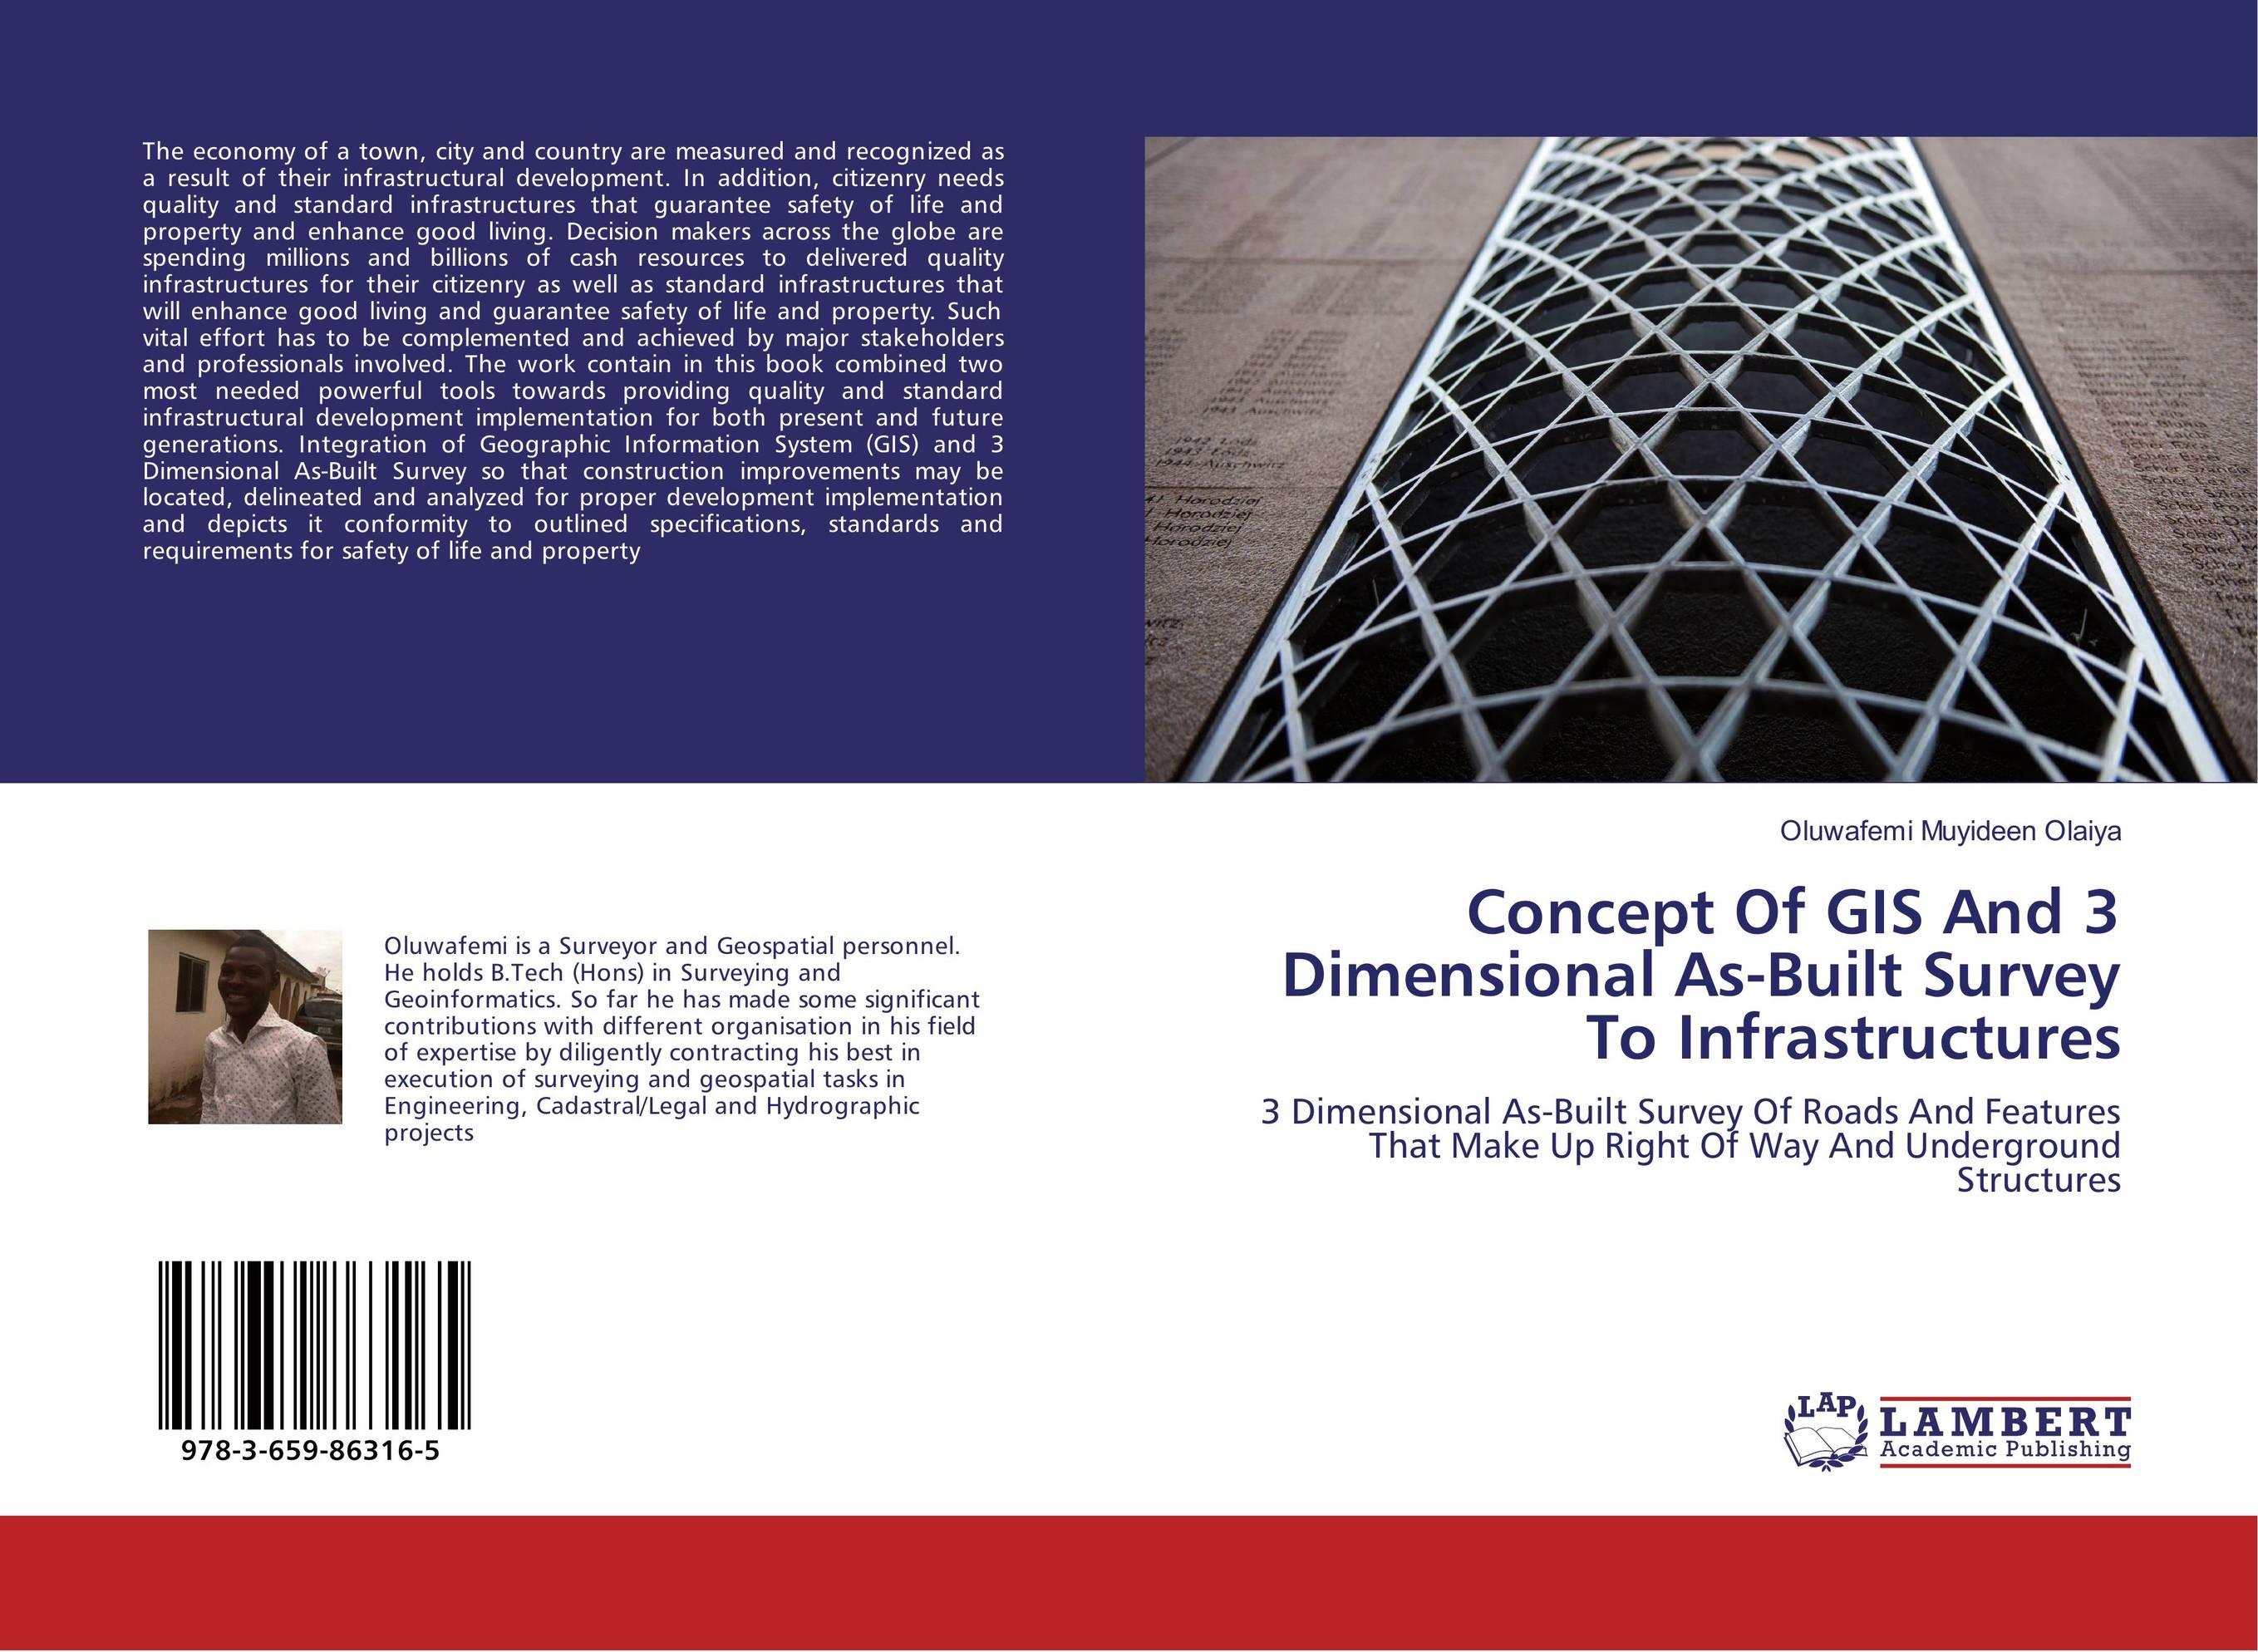 Concept Of GIS And 3 Dimensional As-Built Survey To Infrastructures gis